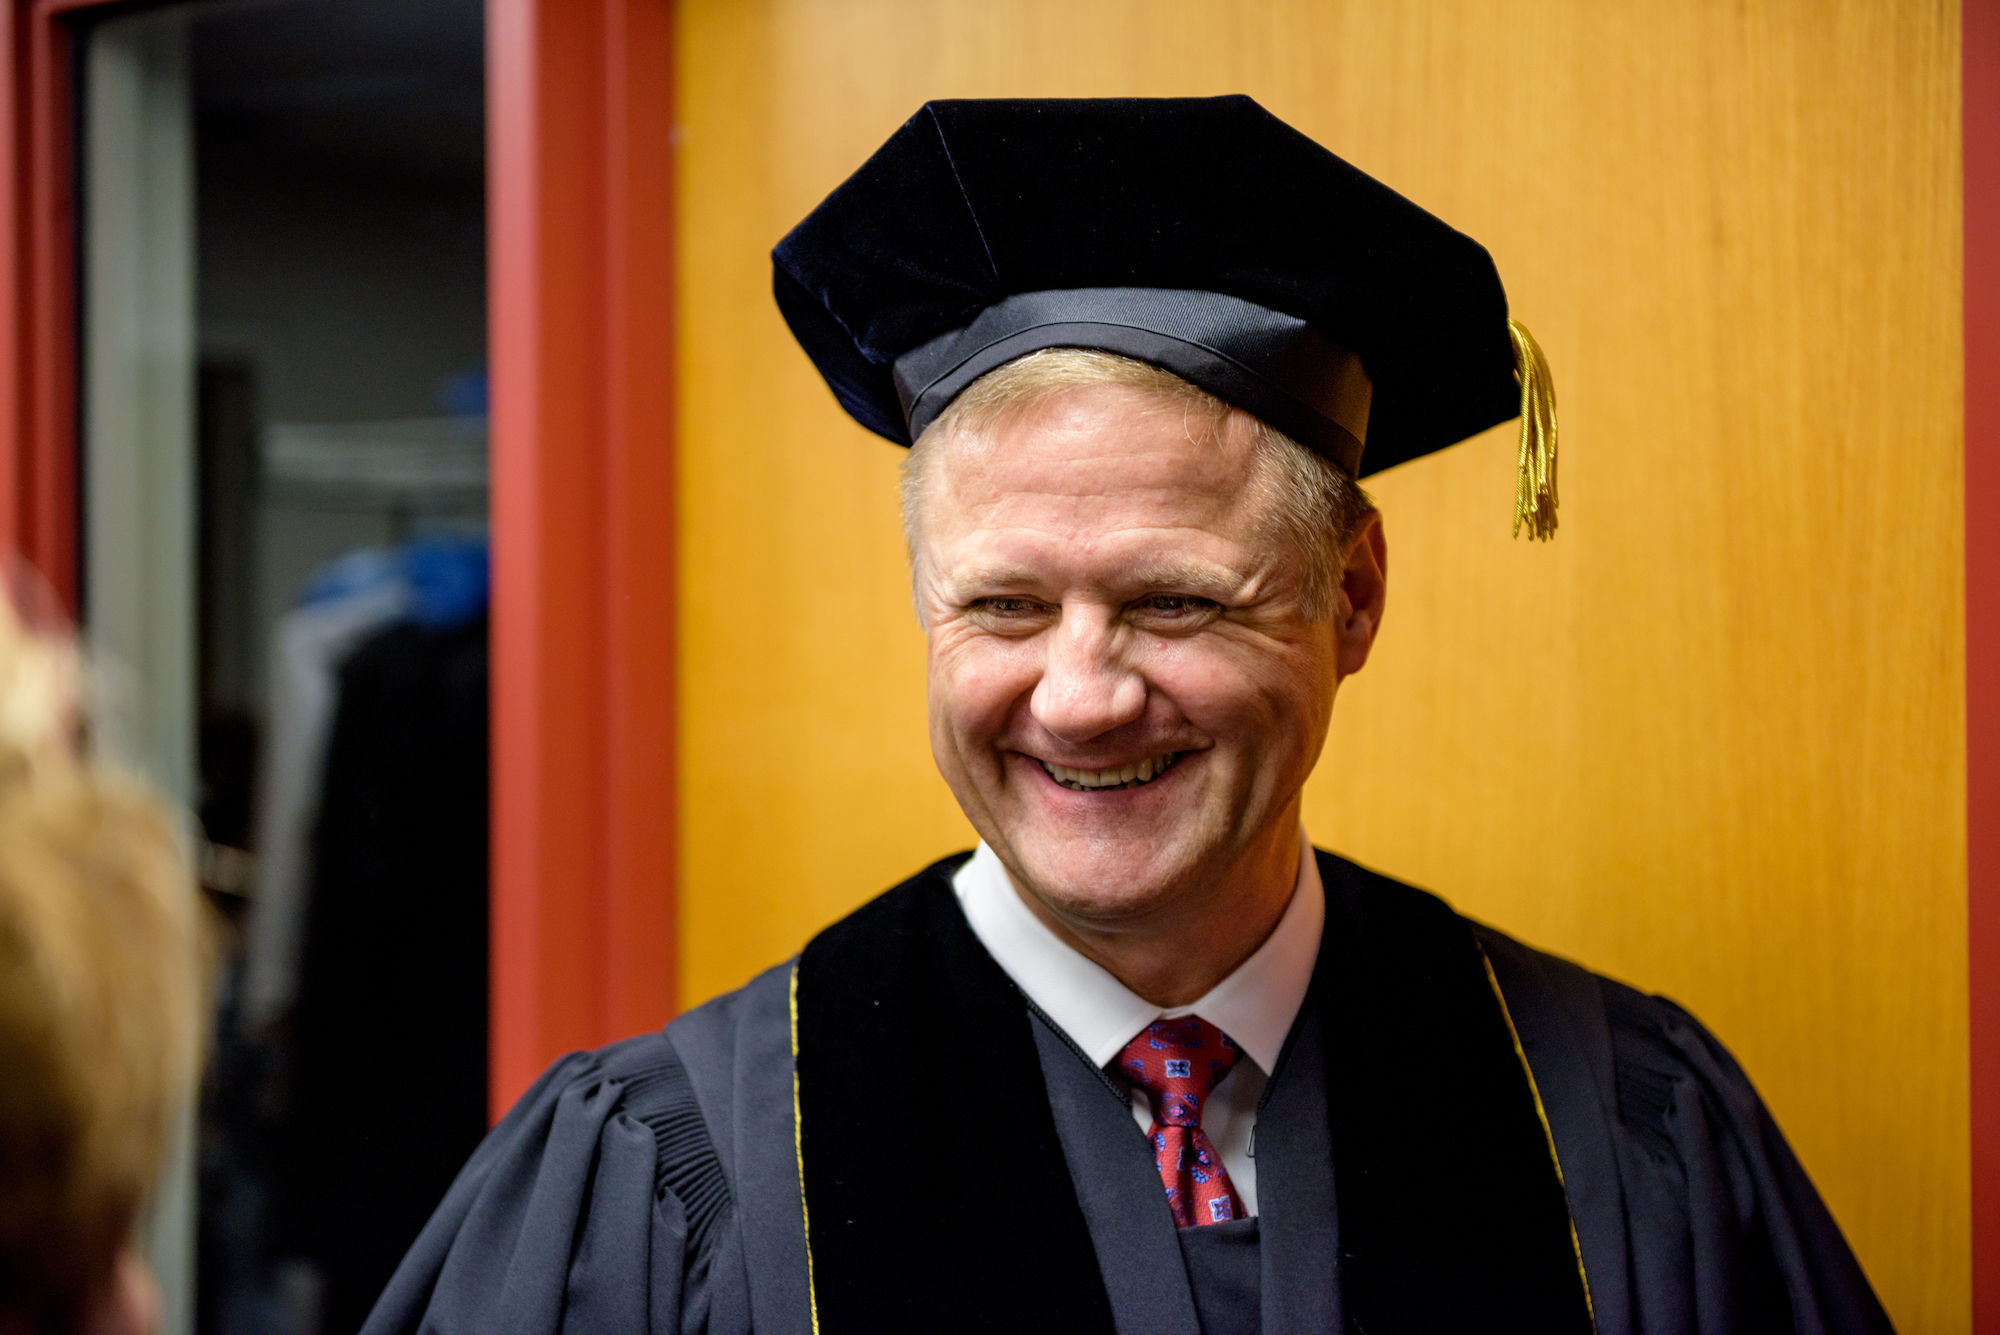 RHIT_Commencement_Platform_Party_Robing-21622.jpg